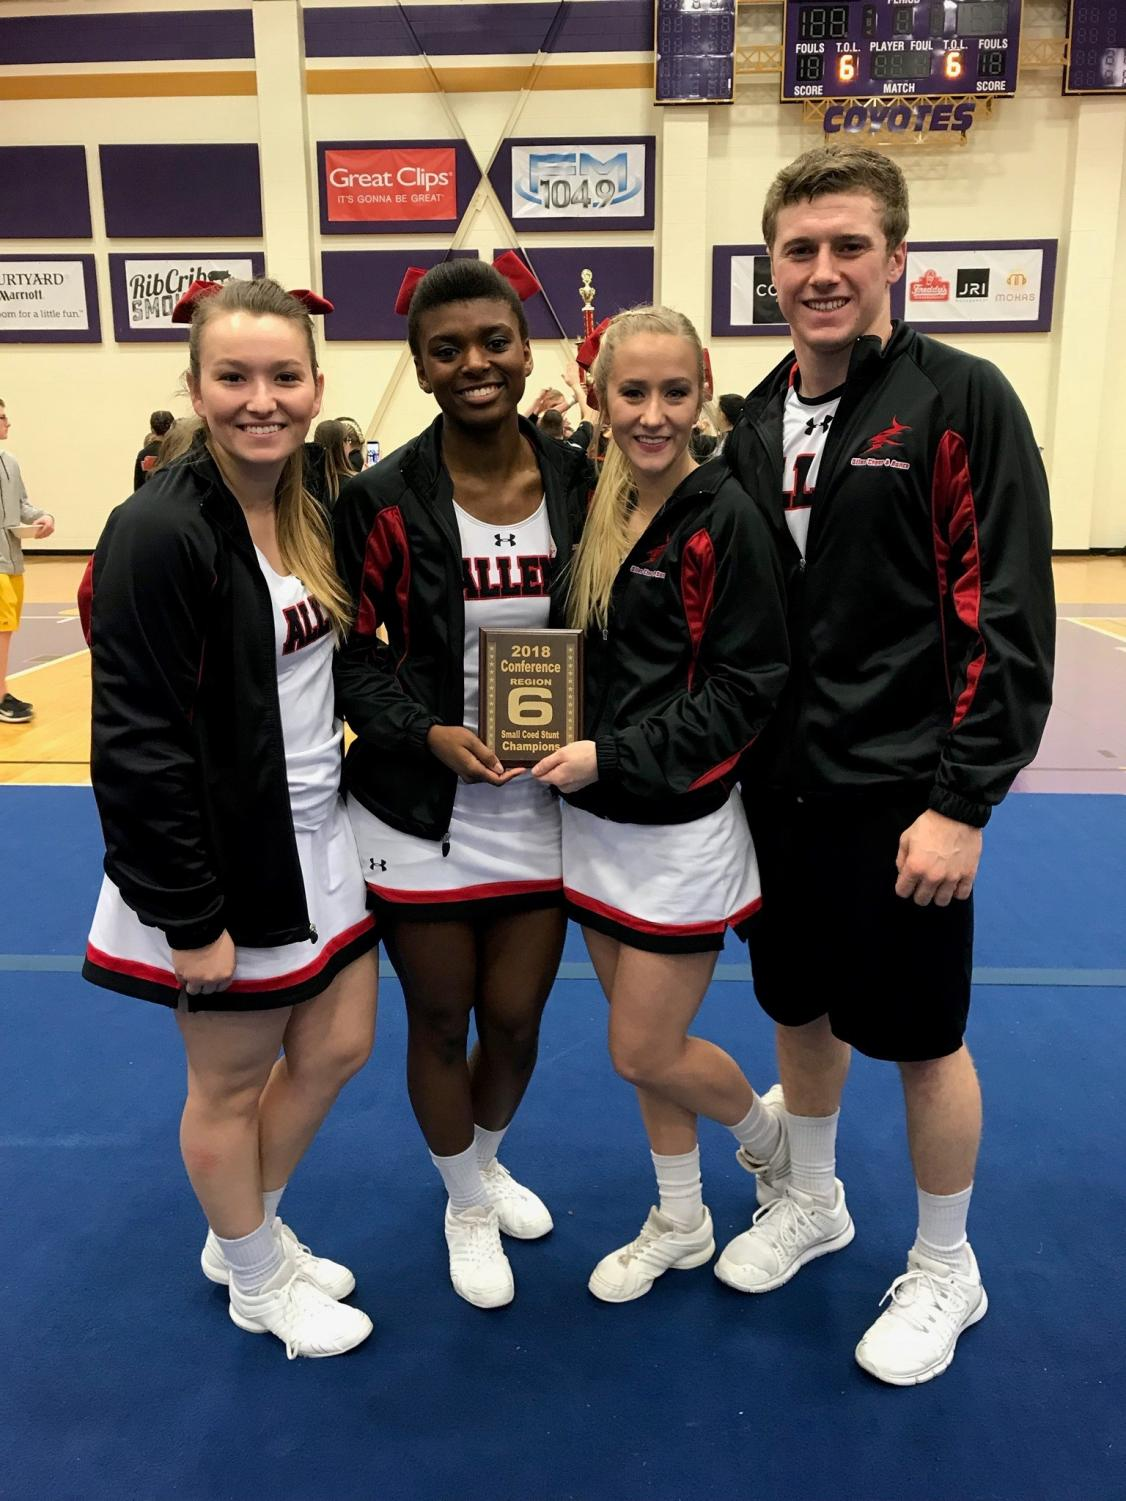 Allen Cheer's Small Co-Ed Stunt Group posed for a pic after placing first at competition in March. From left to right: Jamie Souders, Cateria Ebeling, Katey Hinds, and Seth Coltrane.